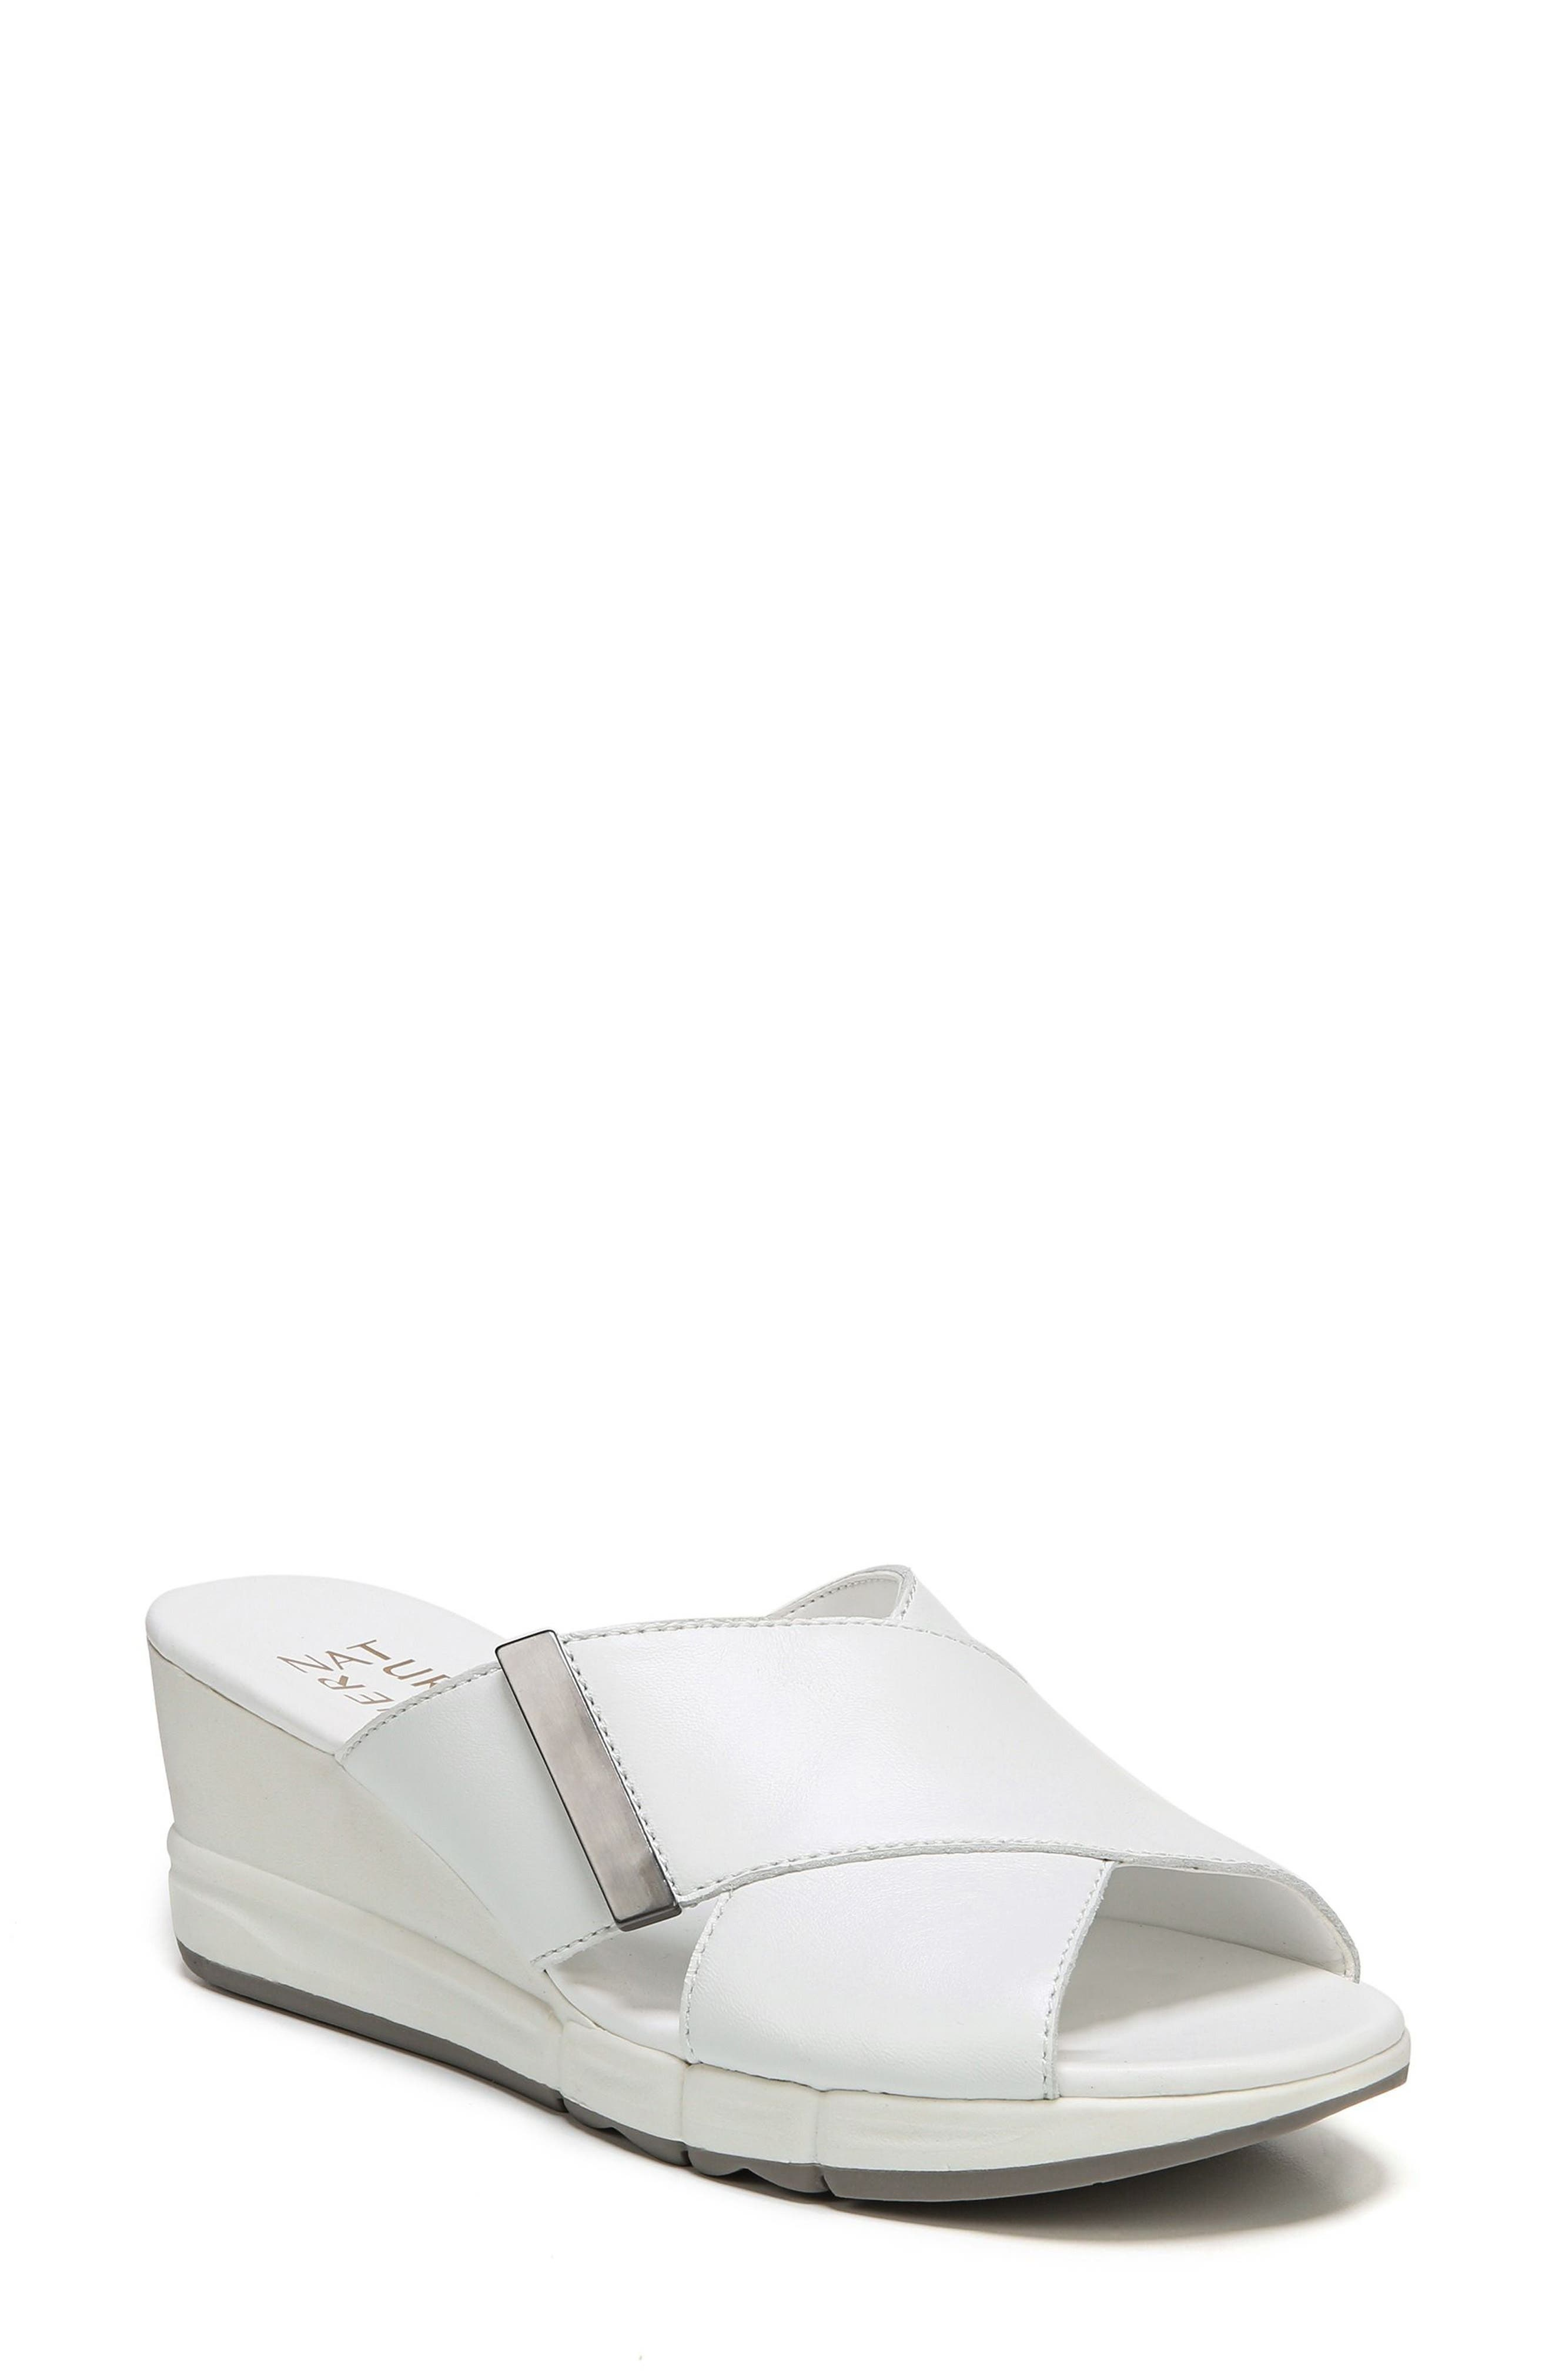 Izzy Wedge Sandal,                             Main thumbnail 1, color,                             White Leather